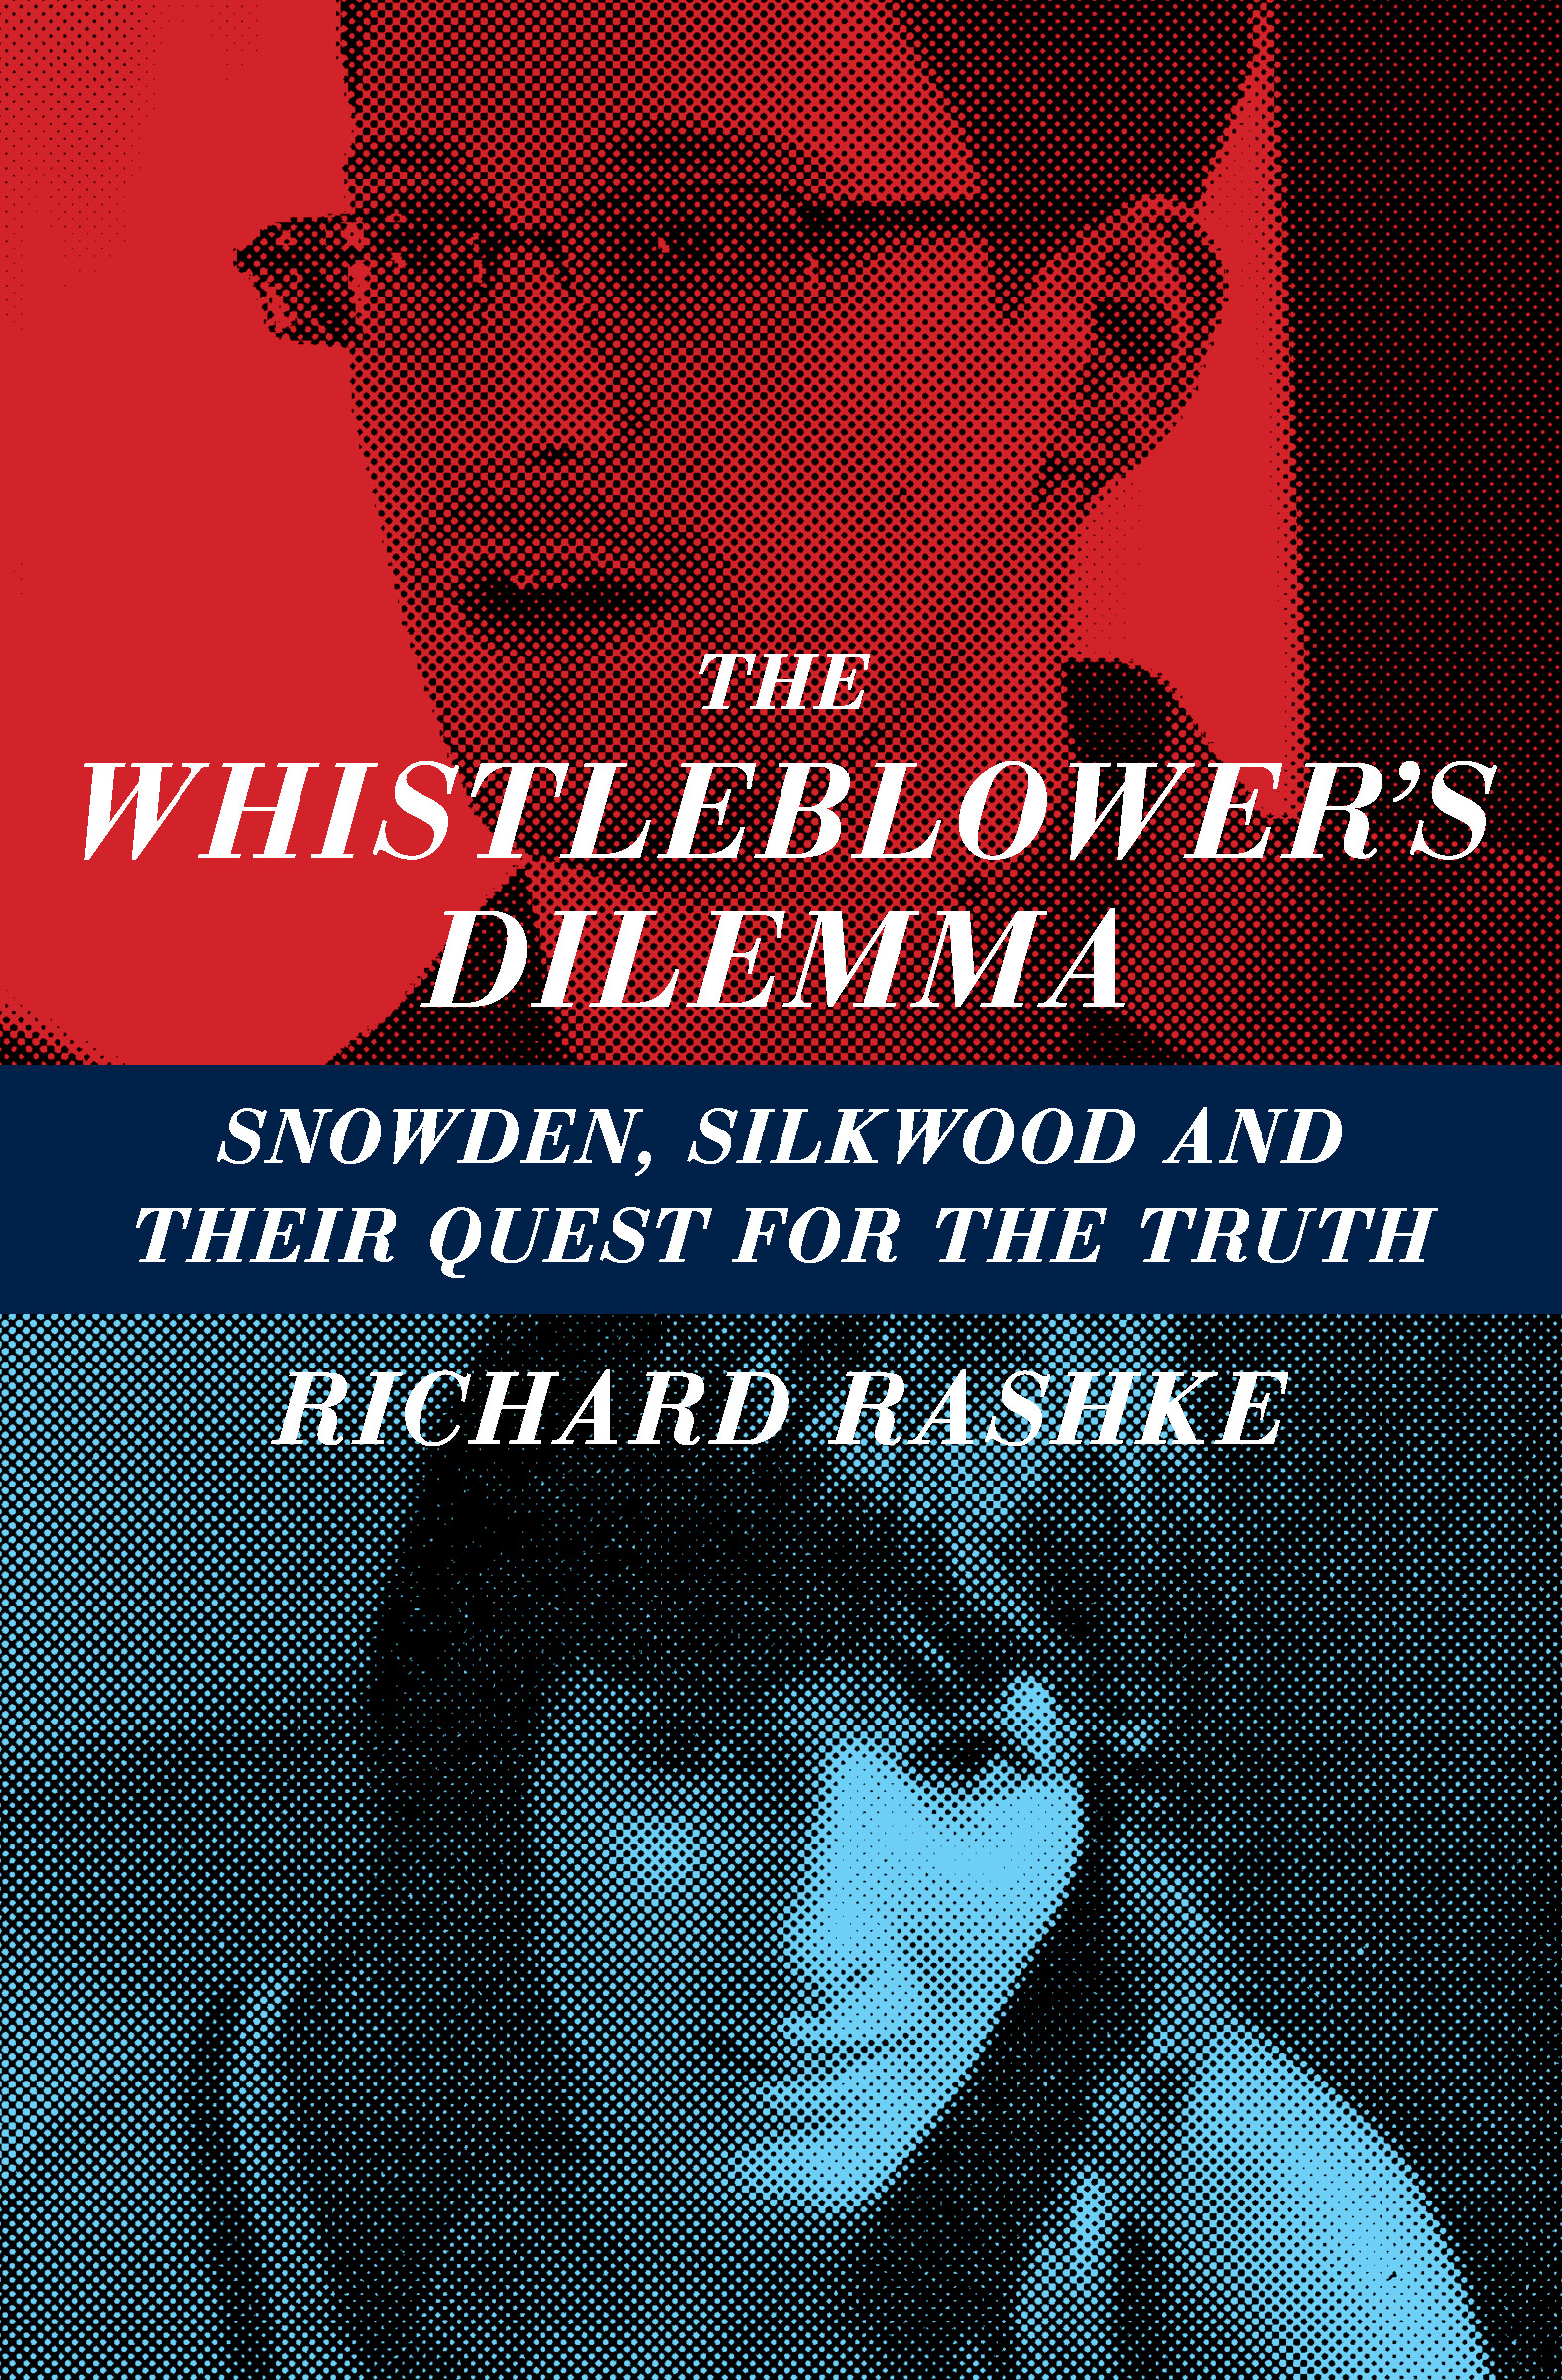 The Whistleblower's Dilemma